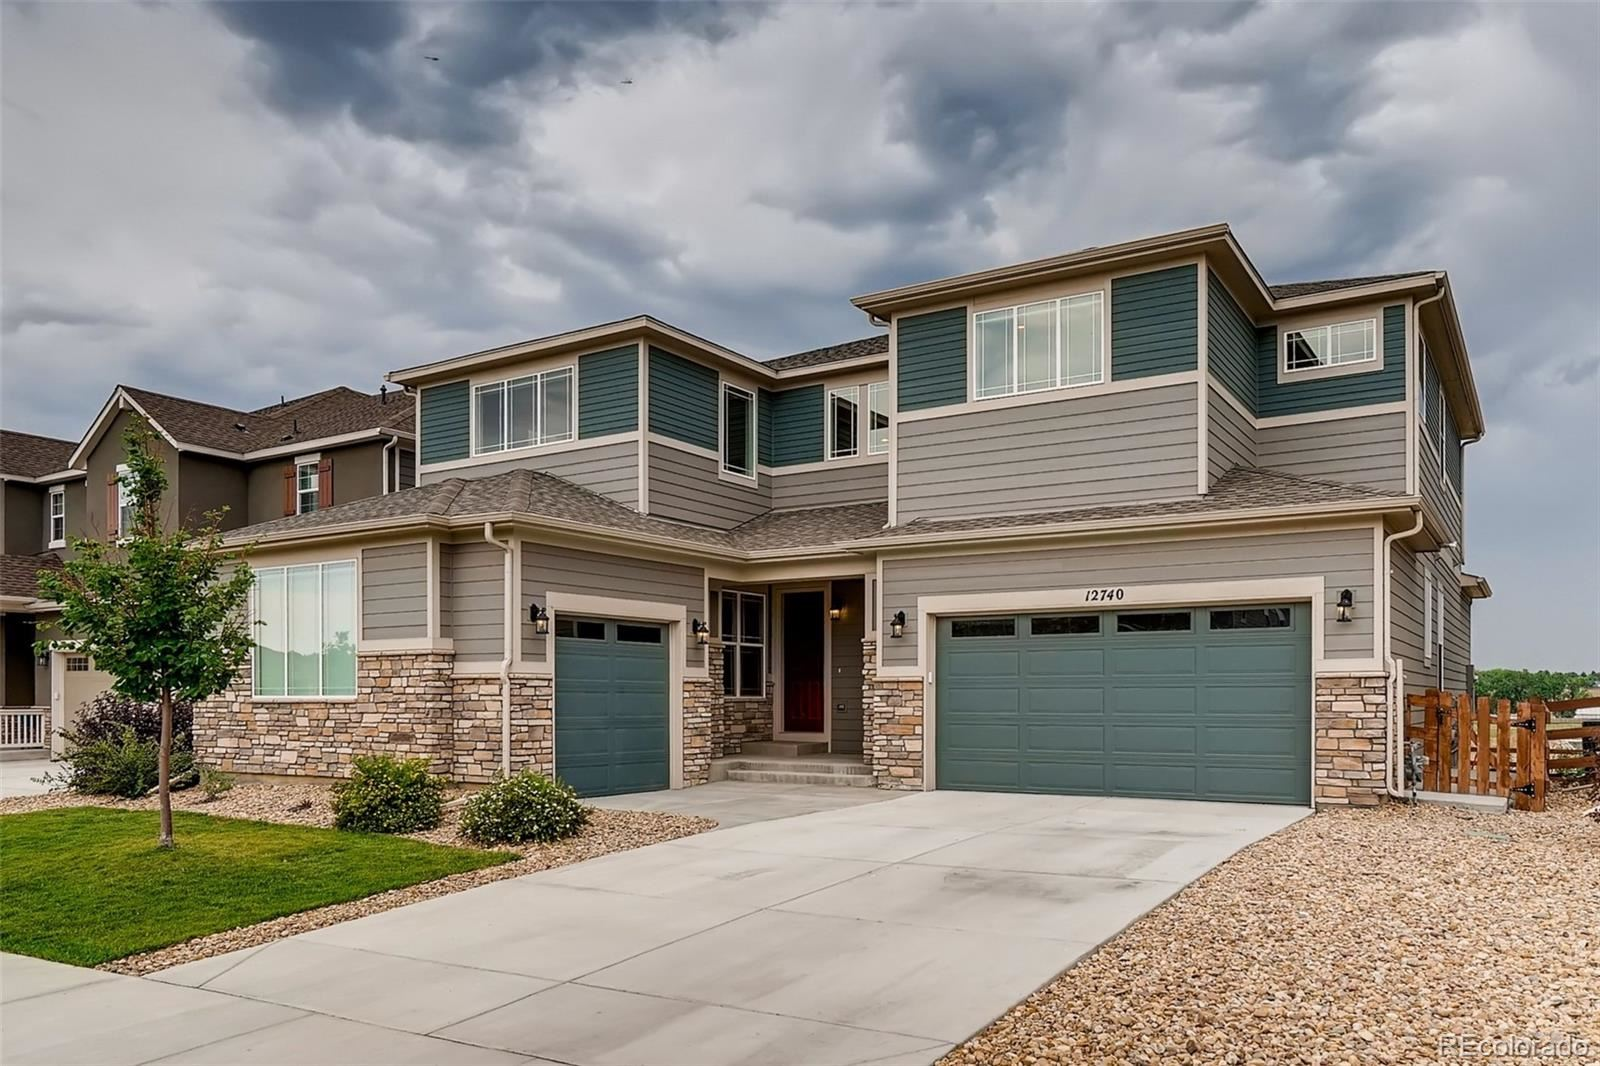 12740 W 73rd Place, Arvada, CO 80005 - #: 3710700